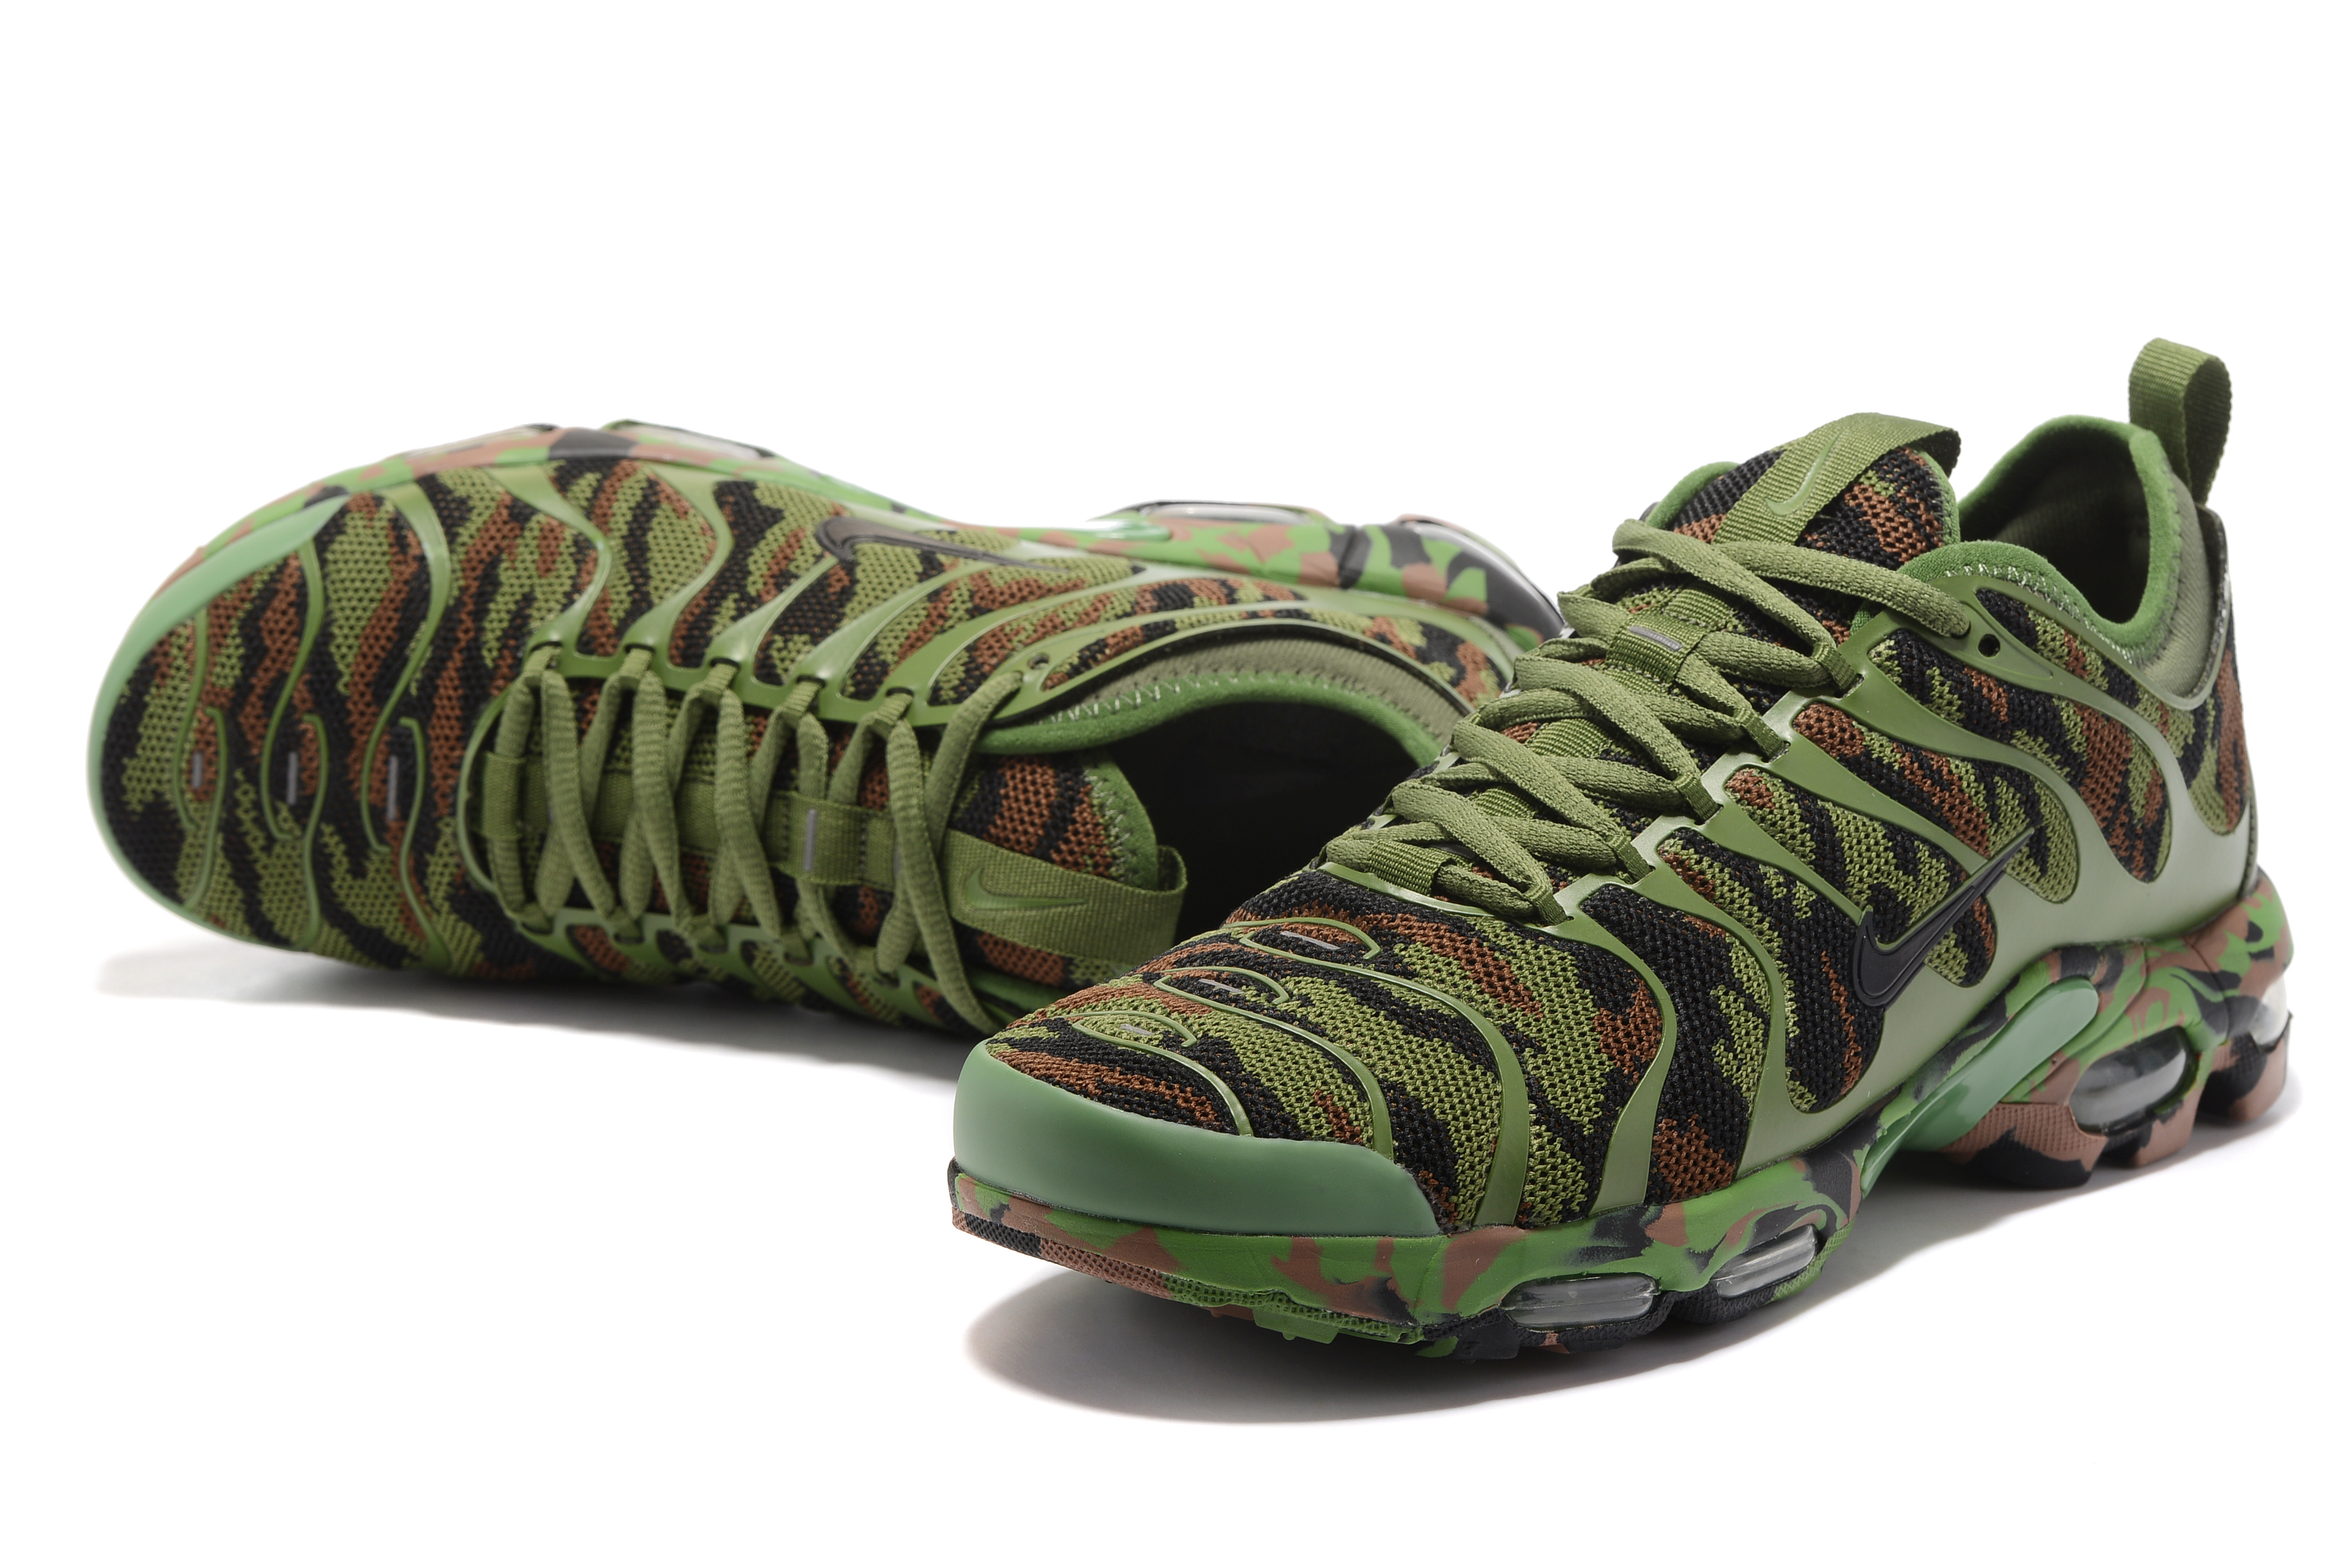 Nike Air Max Plus TN Camo Army Green Shoes